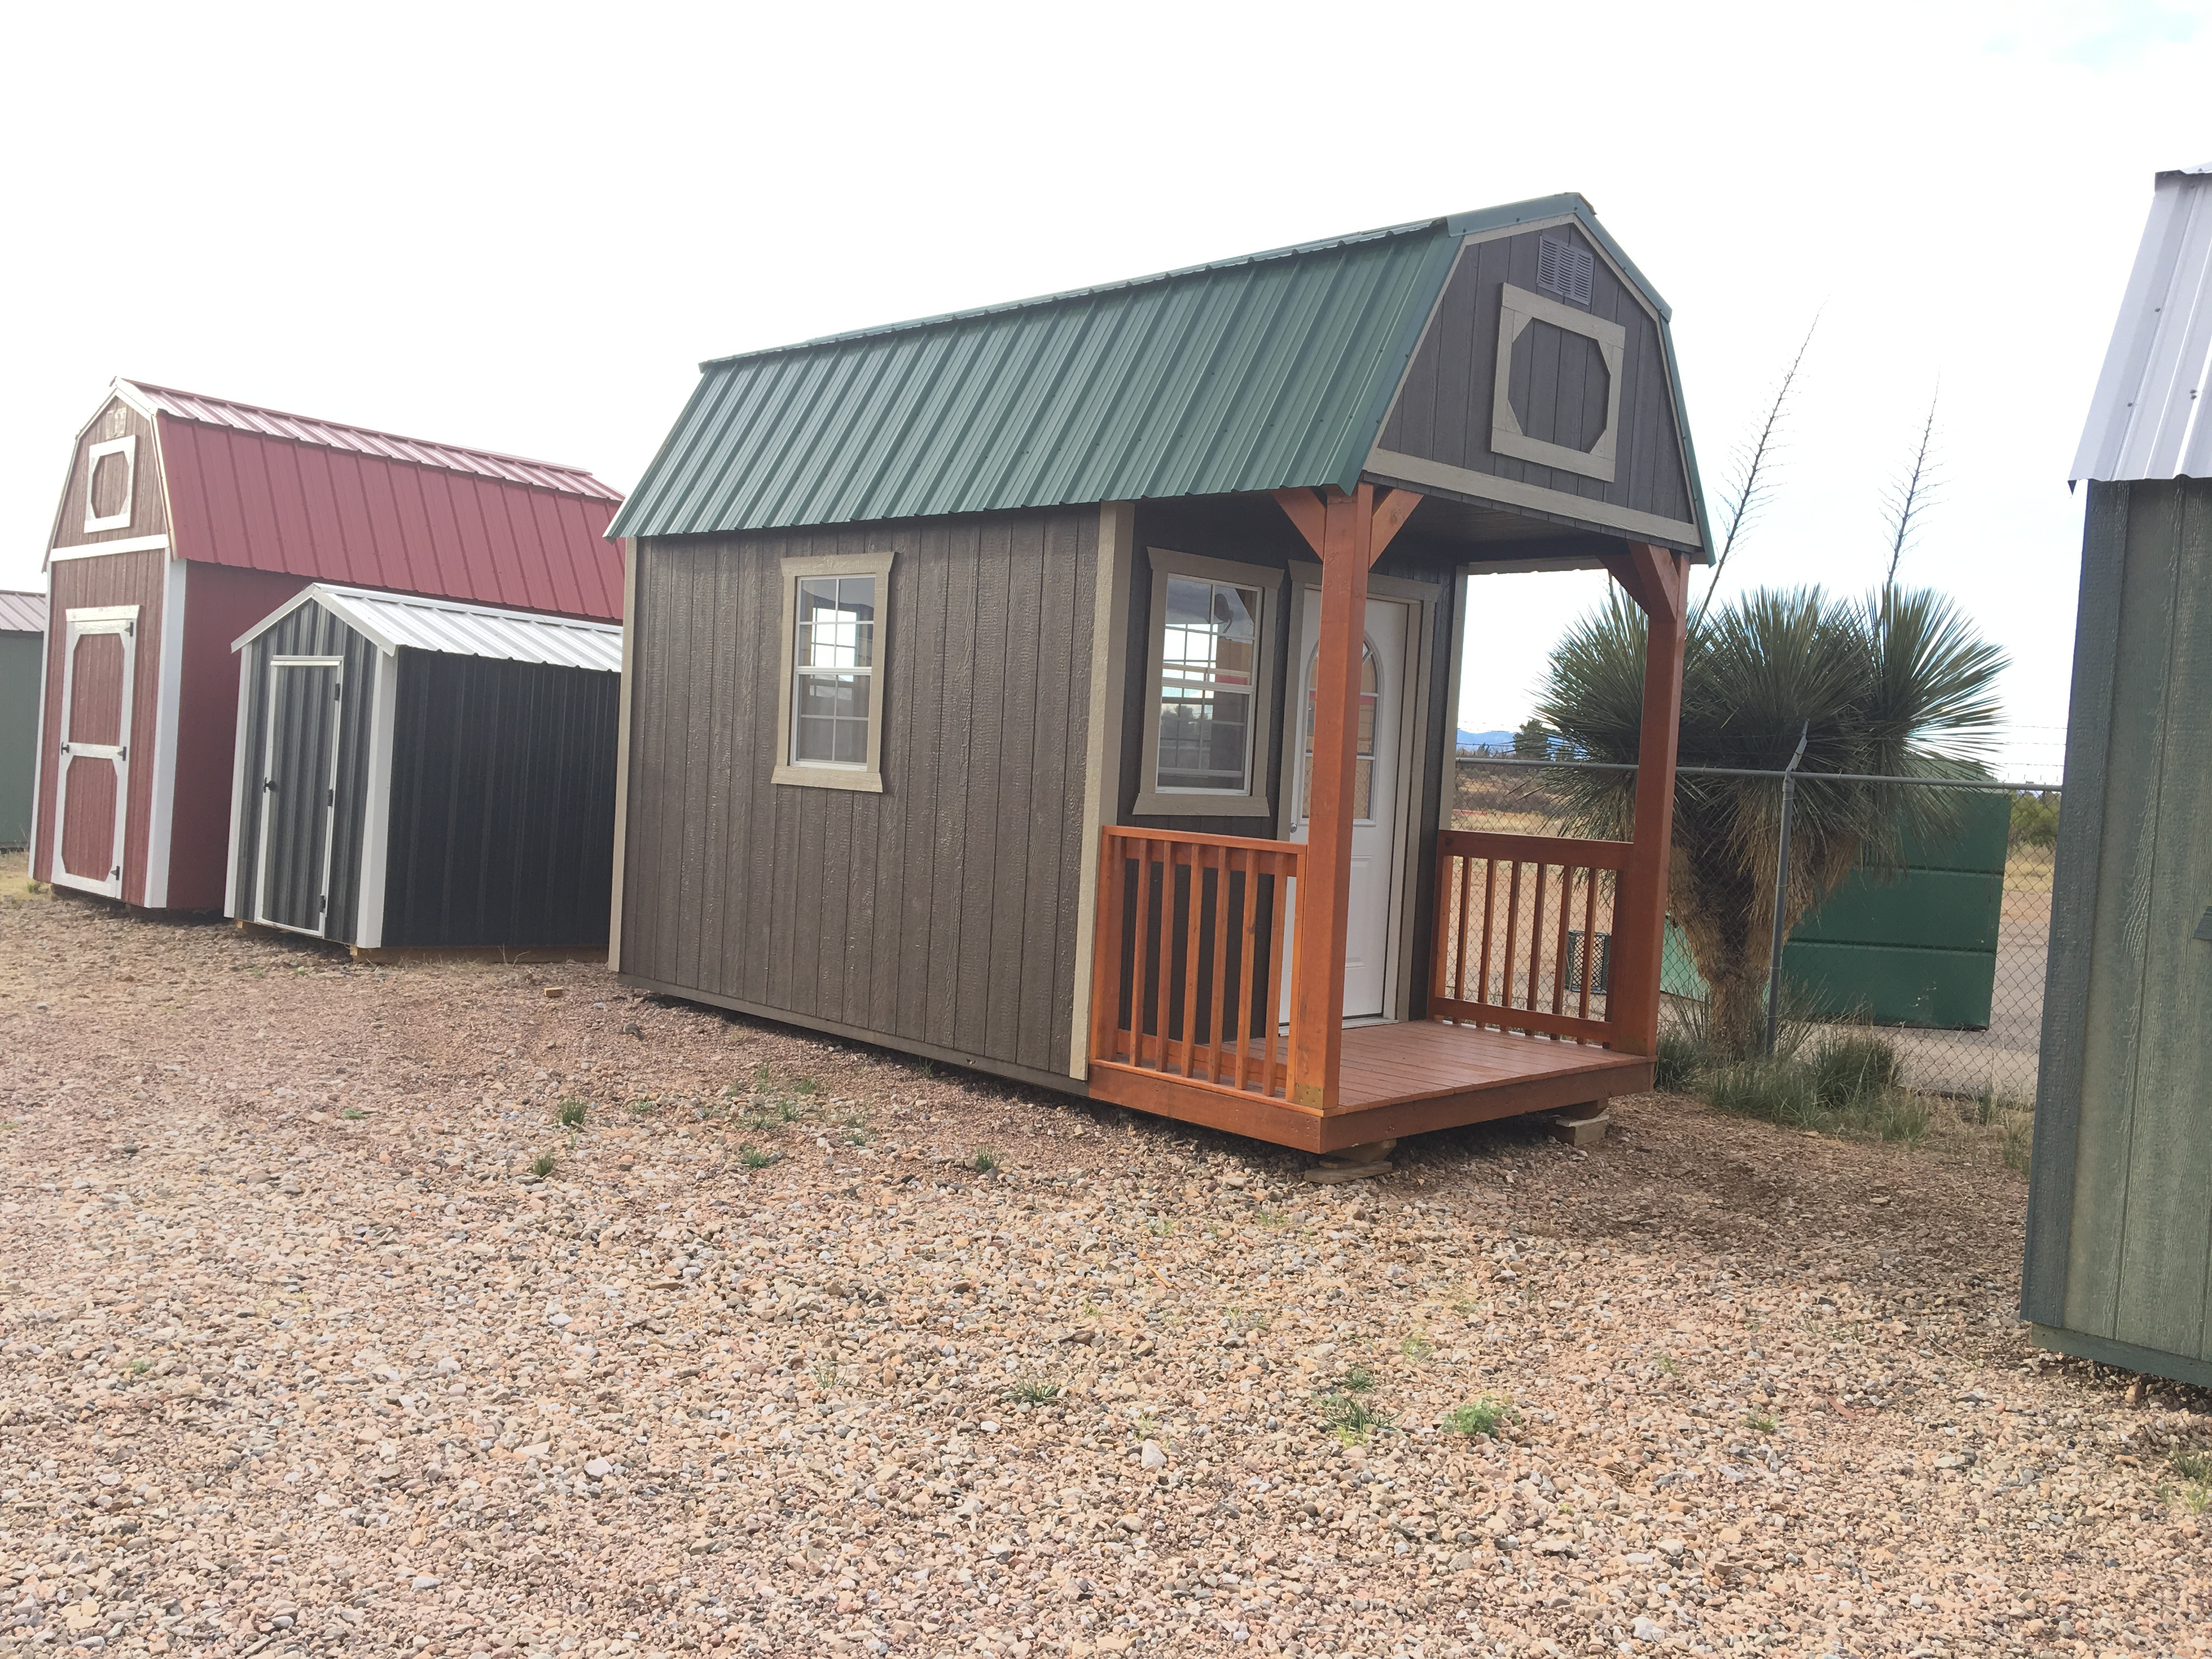 Cabins - Tiny Houses - Tucson Sheds